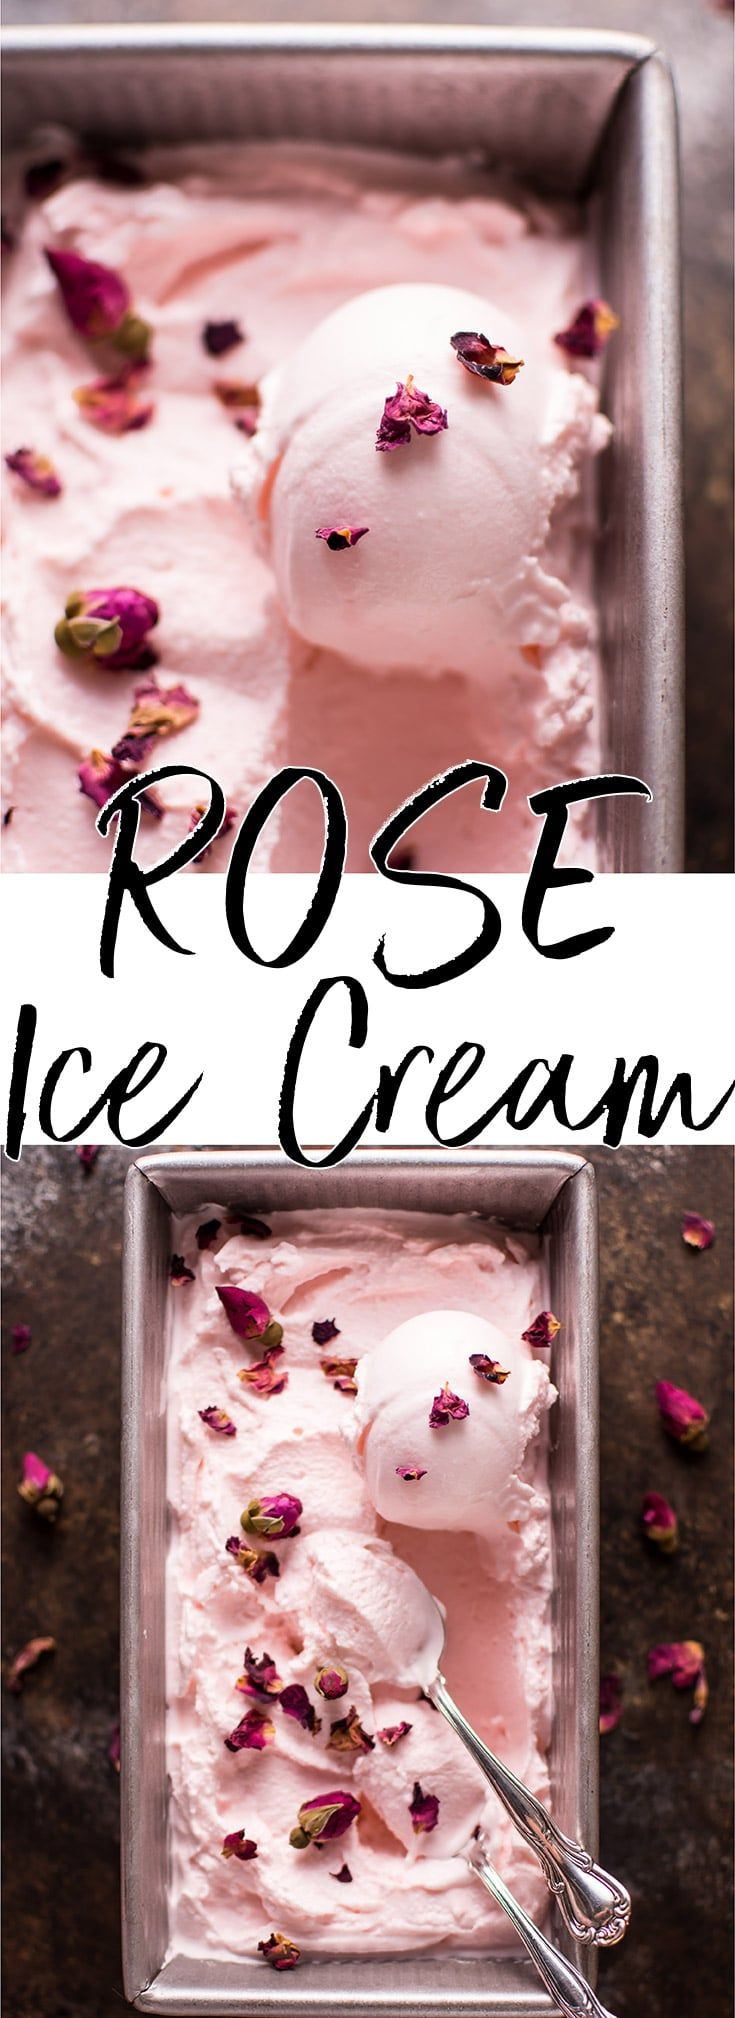 This rose ice cream is a delicious treat that's delicately flavored with rose water and vanilla. A simple recipe that can easily be made in your ice cream maker.